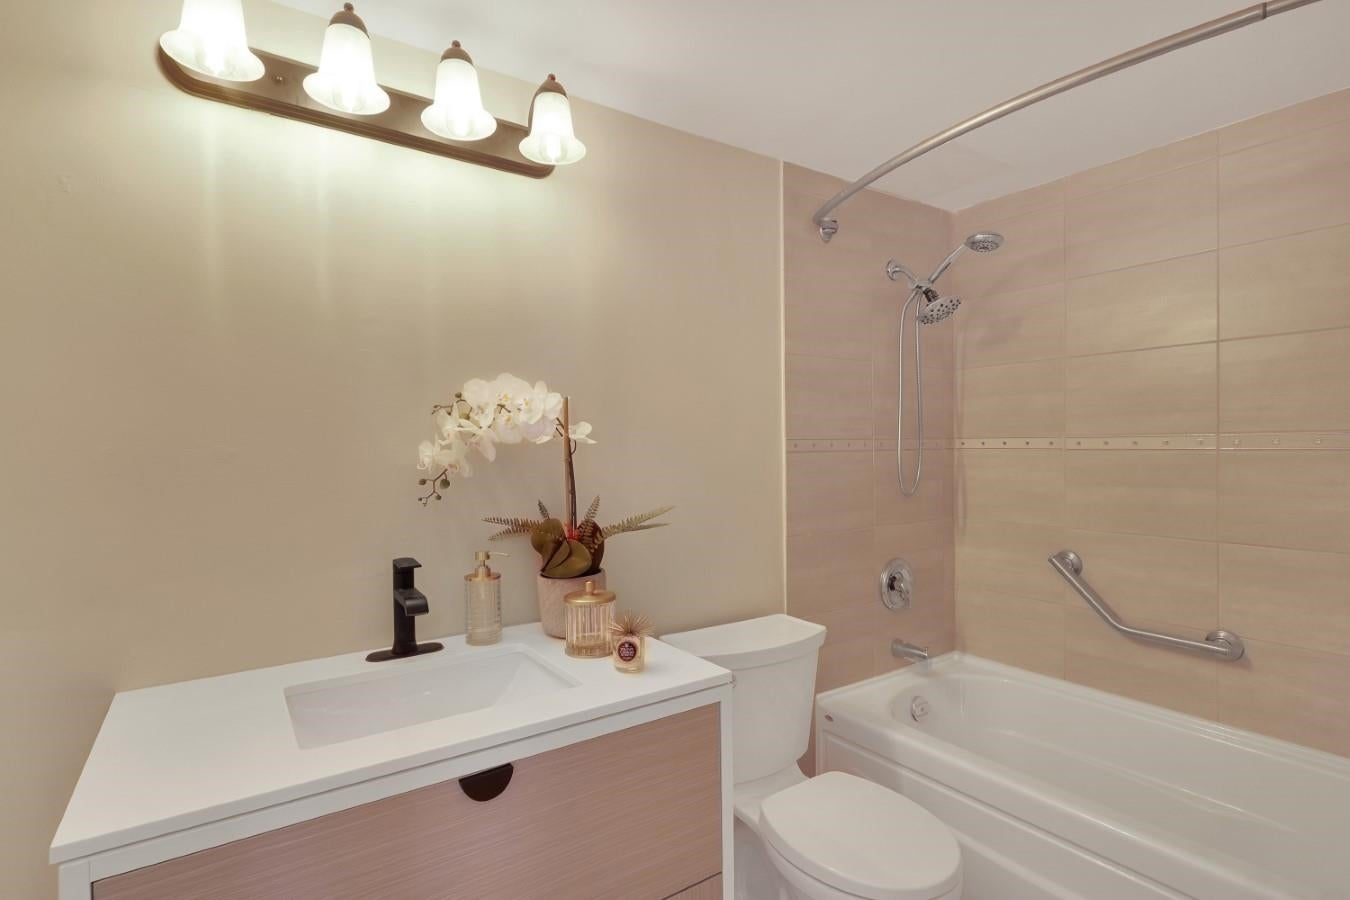 206 330 W 2ND STREET - Lower Lonsdale Apartment/Condo for sale, 2 Bedrooms (R2604160) - #28